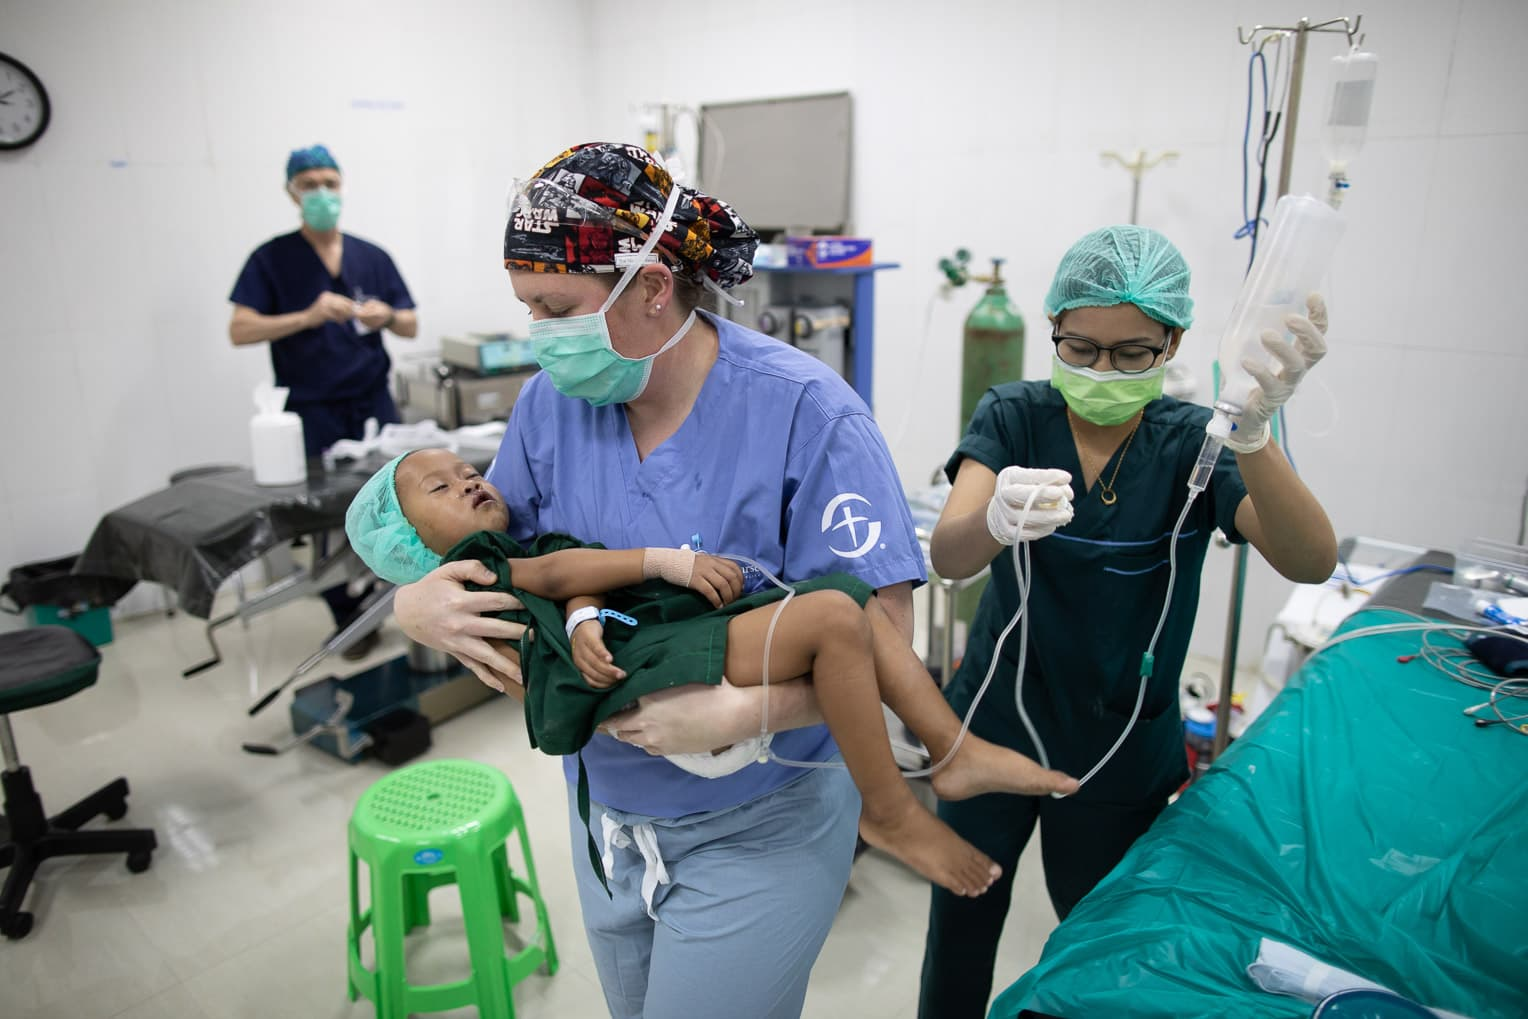 More than 40 people, including many children, had surgery through our Cleft Lip and Palate Surgery Project in Myanmar.